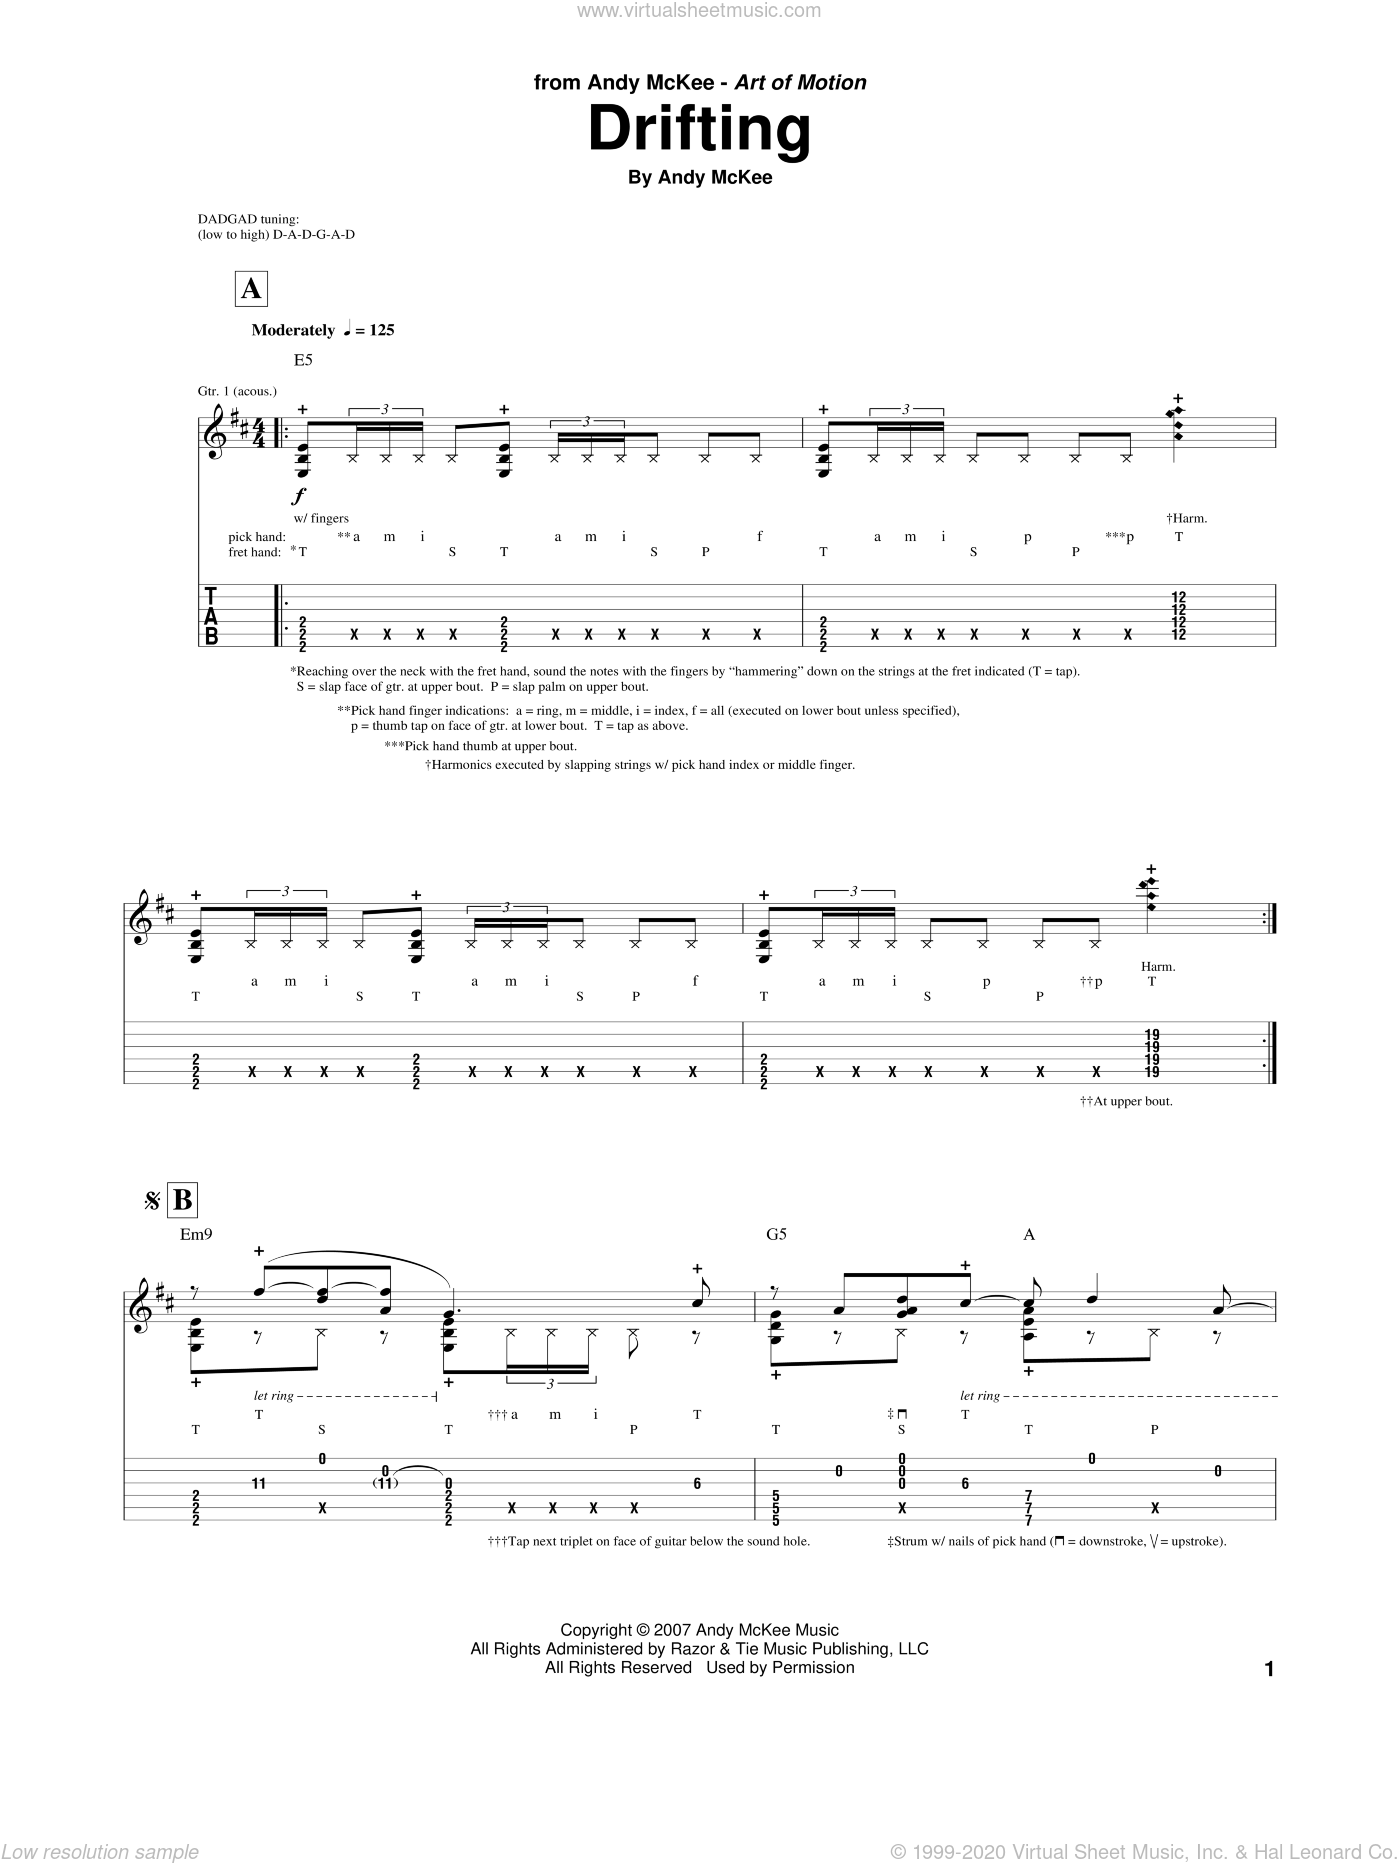 Drifting sheet music for guitar (tablature) by Andy McKee, intermediate